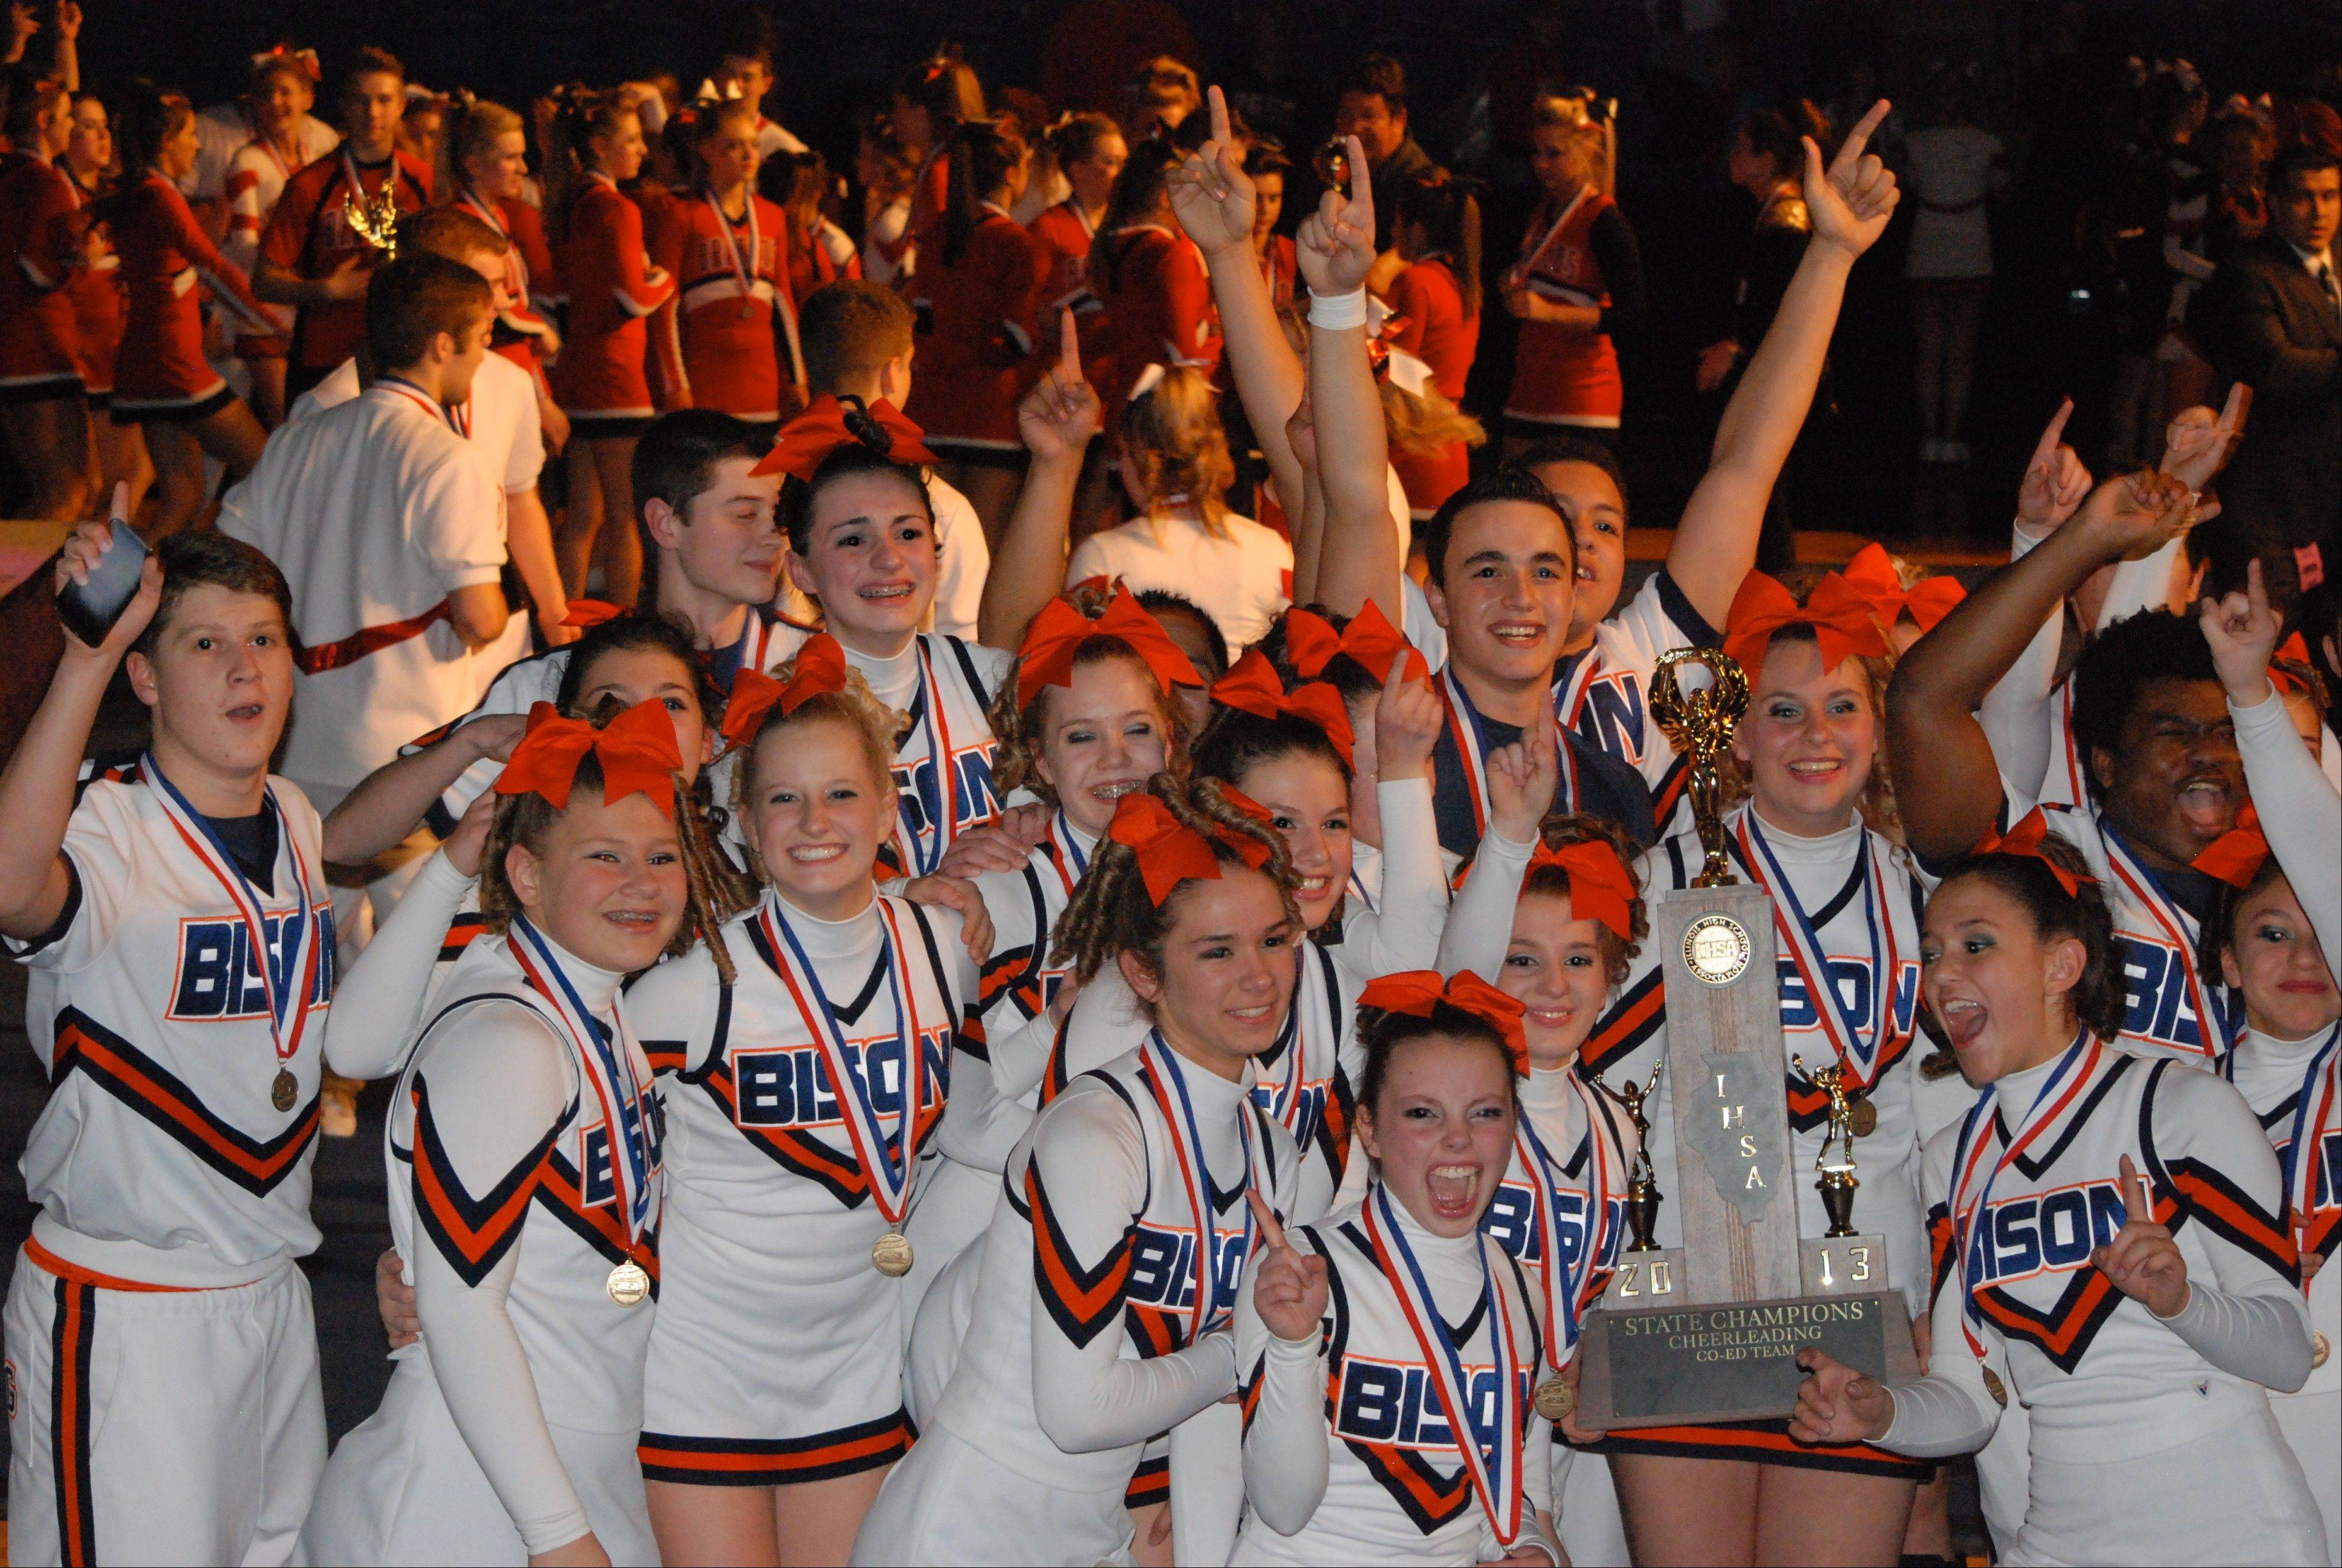 Buffalo Grove High School coed varsity cheerleaders celebrate their 2013 IHSA State Championship win at Bloomington on Feb. 2.